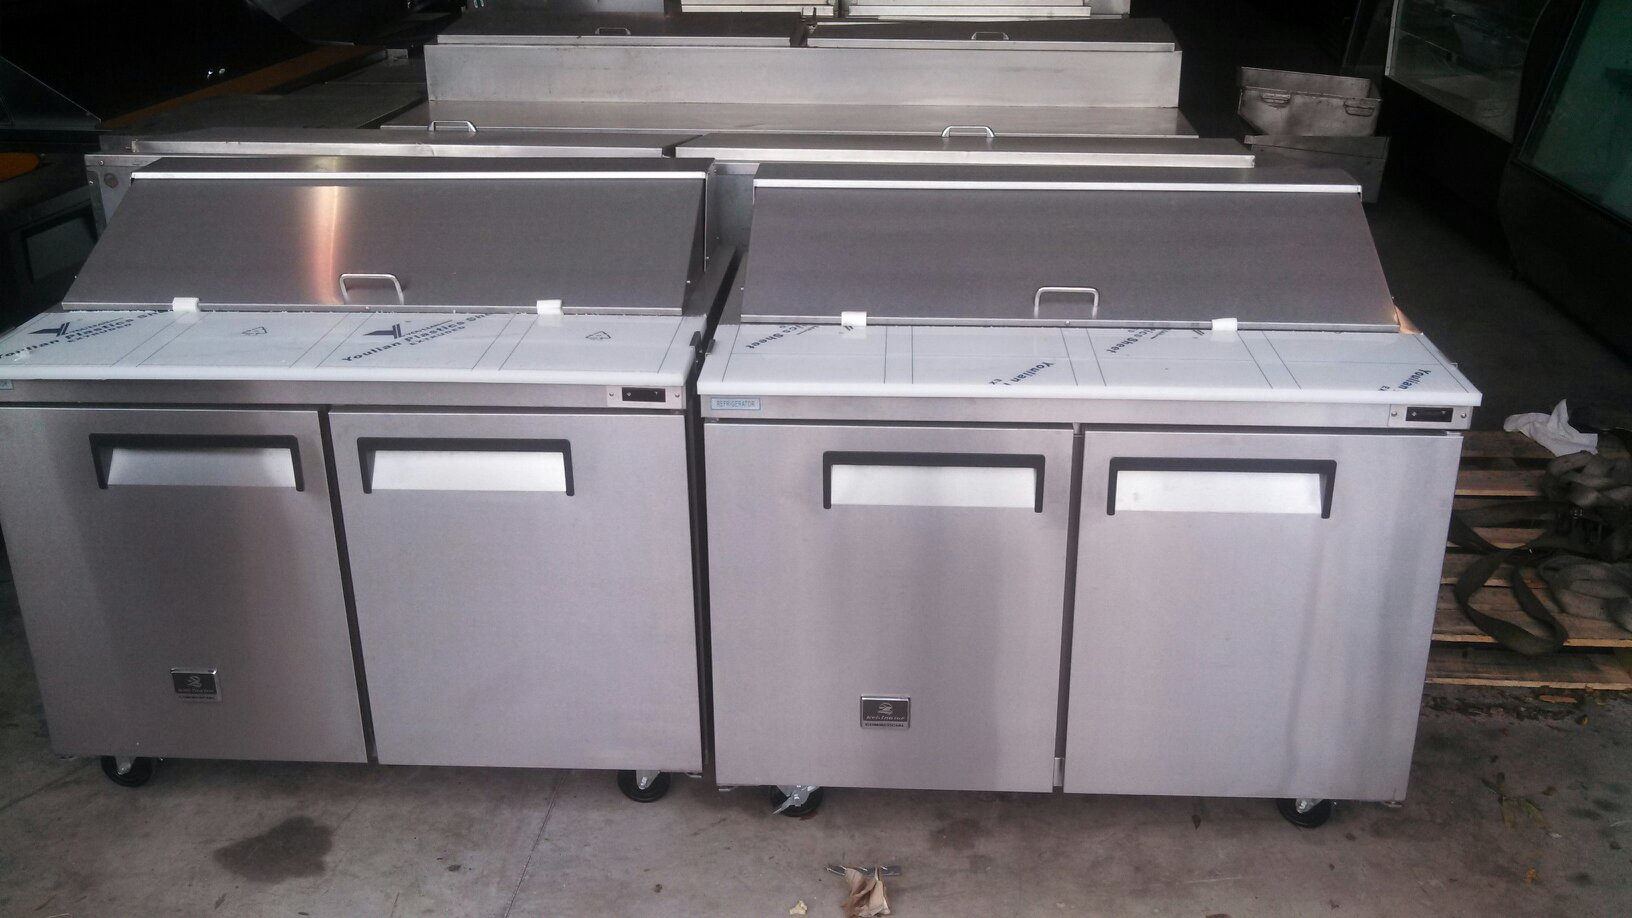 refrigerated prep table liquidation true blue air etc must go kitchen prep tables Refrigerated Prep Table Liquidation True Blue Air etc MUST GO